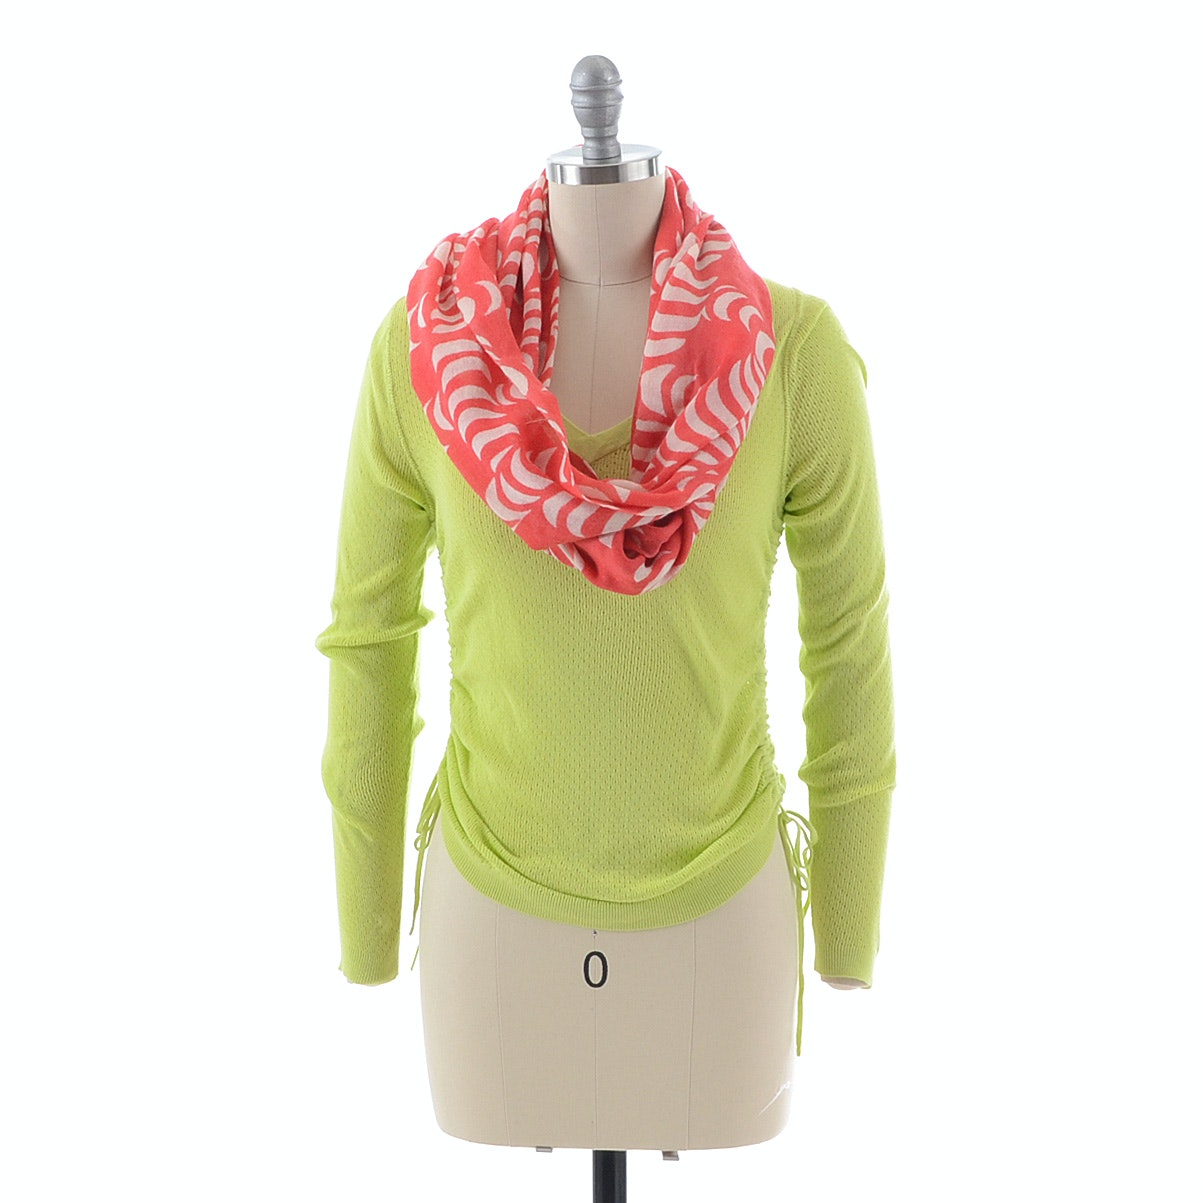 Banana Republic Sweater and Scarf